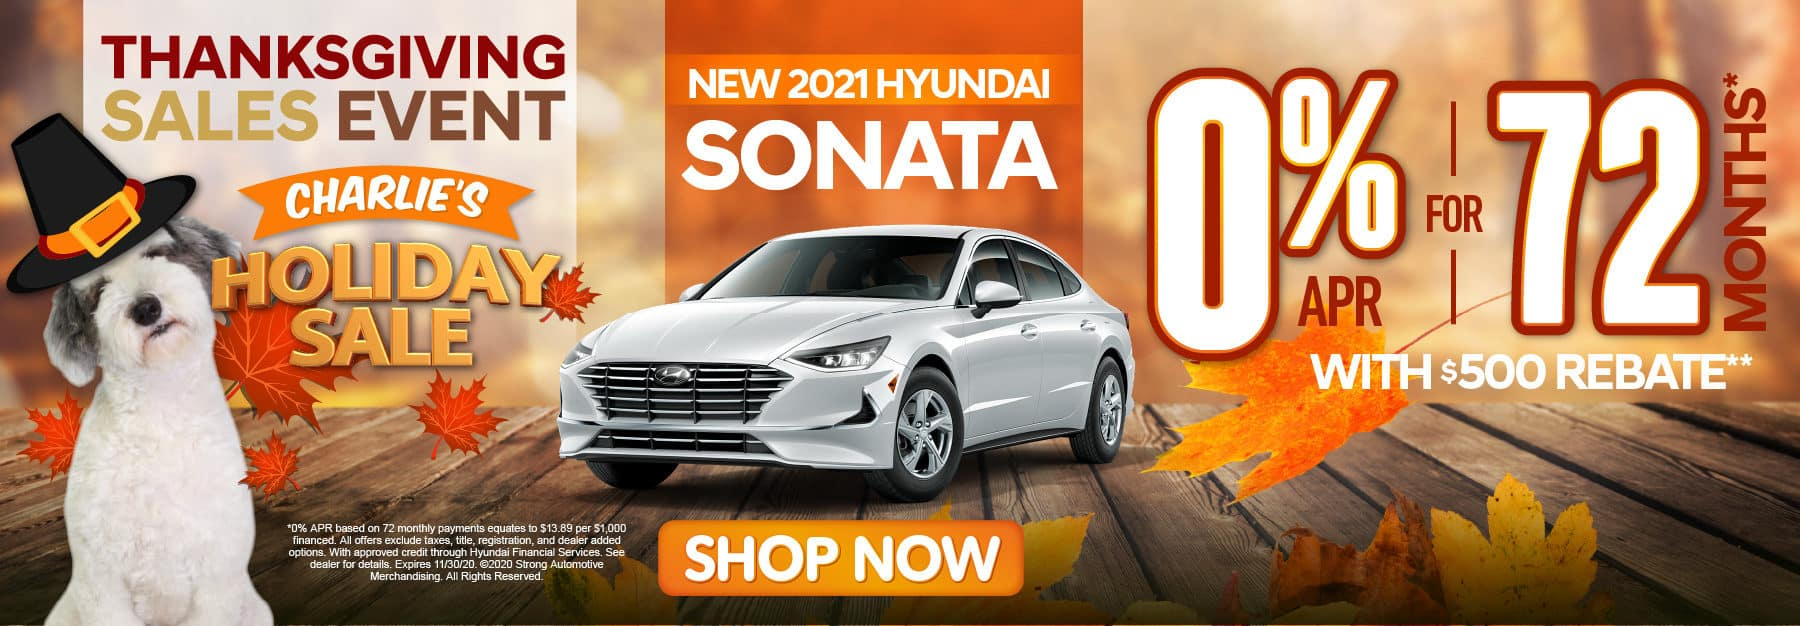 New 2021 Hyundai Sonata 0% APR for 72 months - click here to view inventory